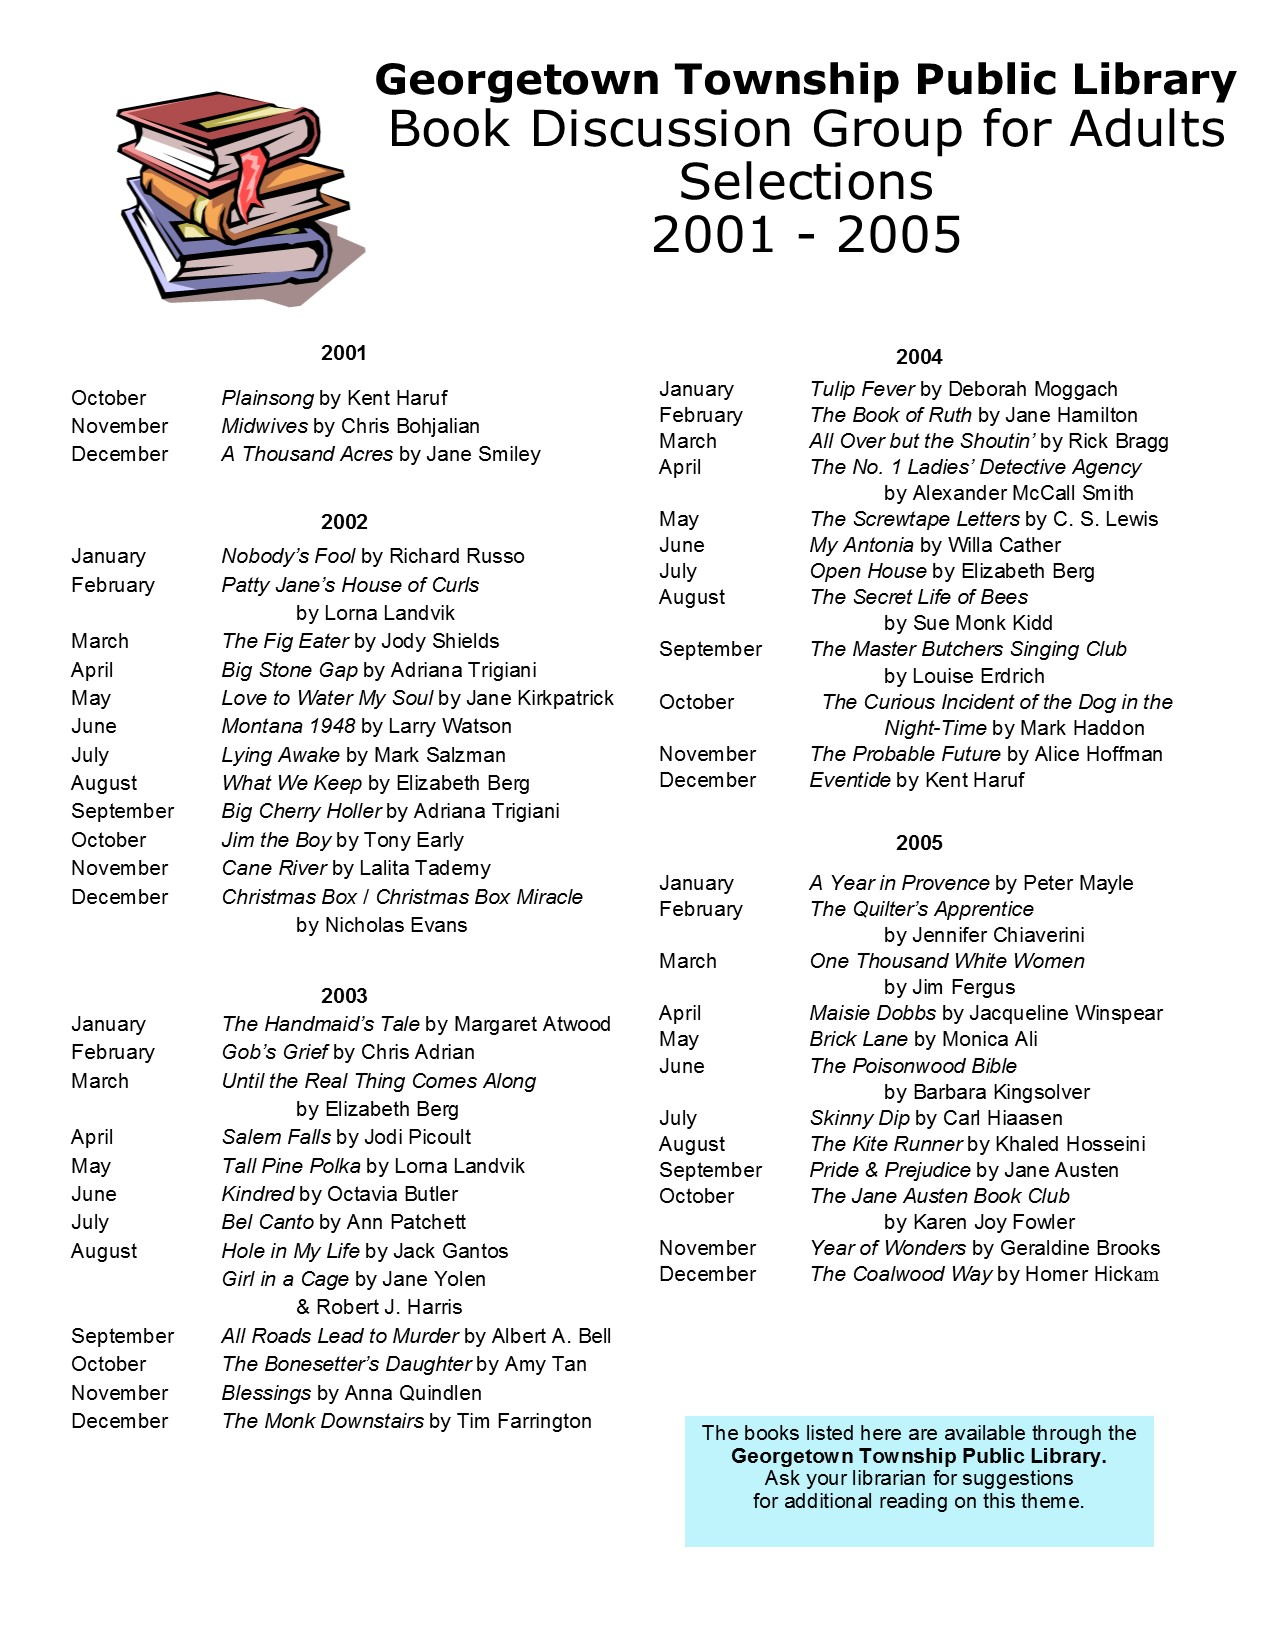 Book Discussion 2001-2005 for the web